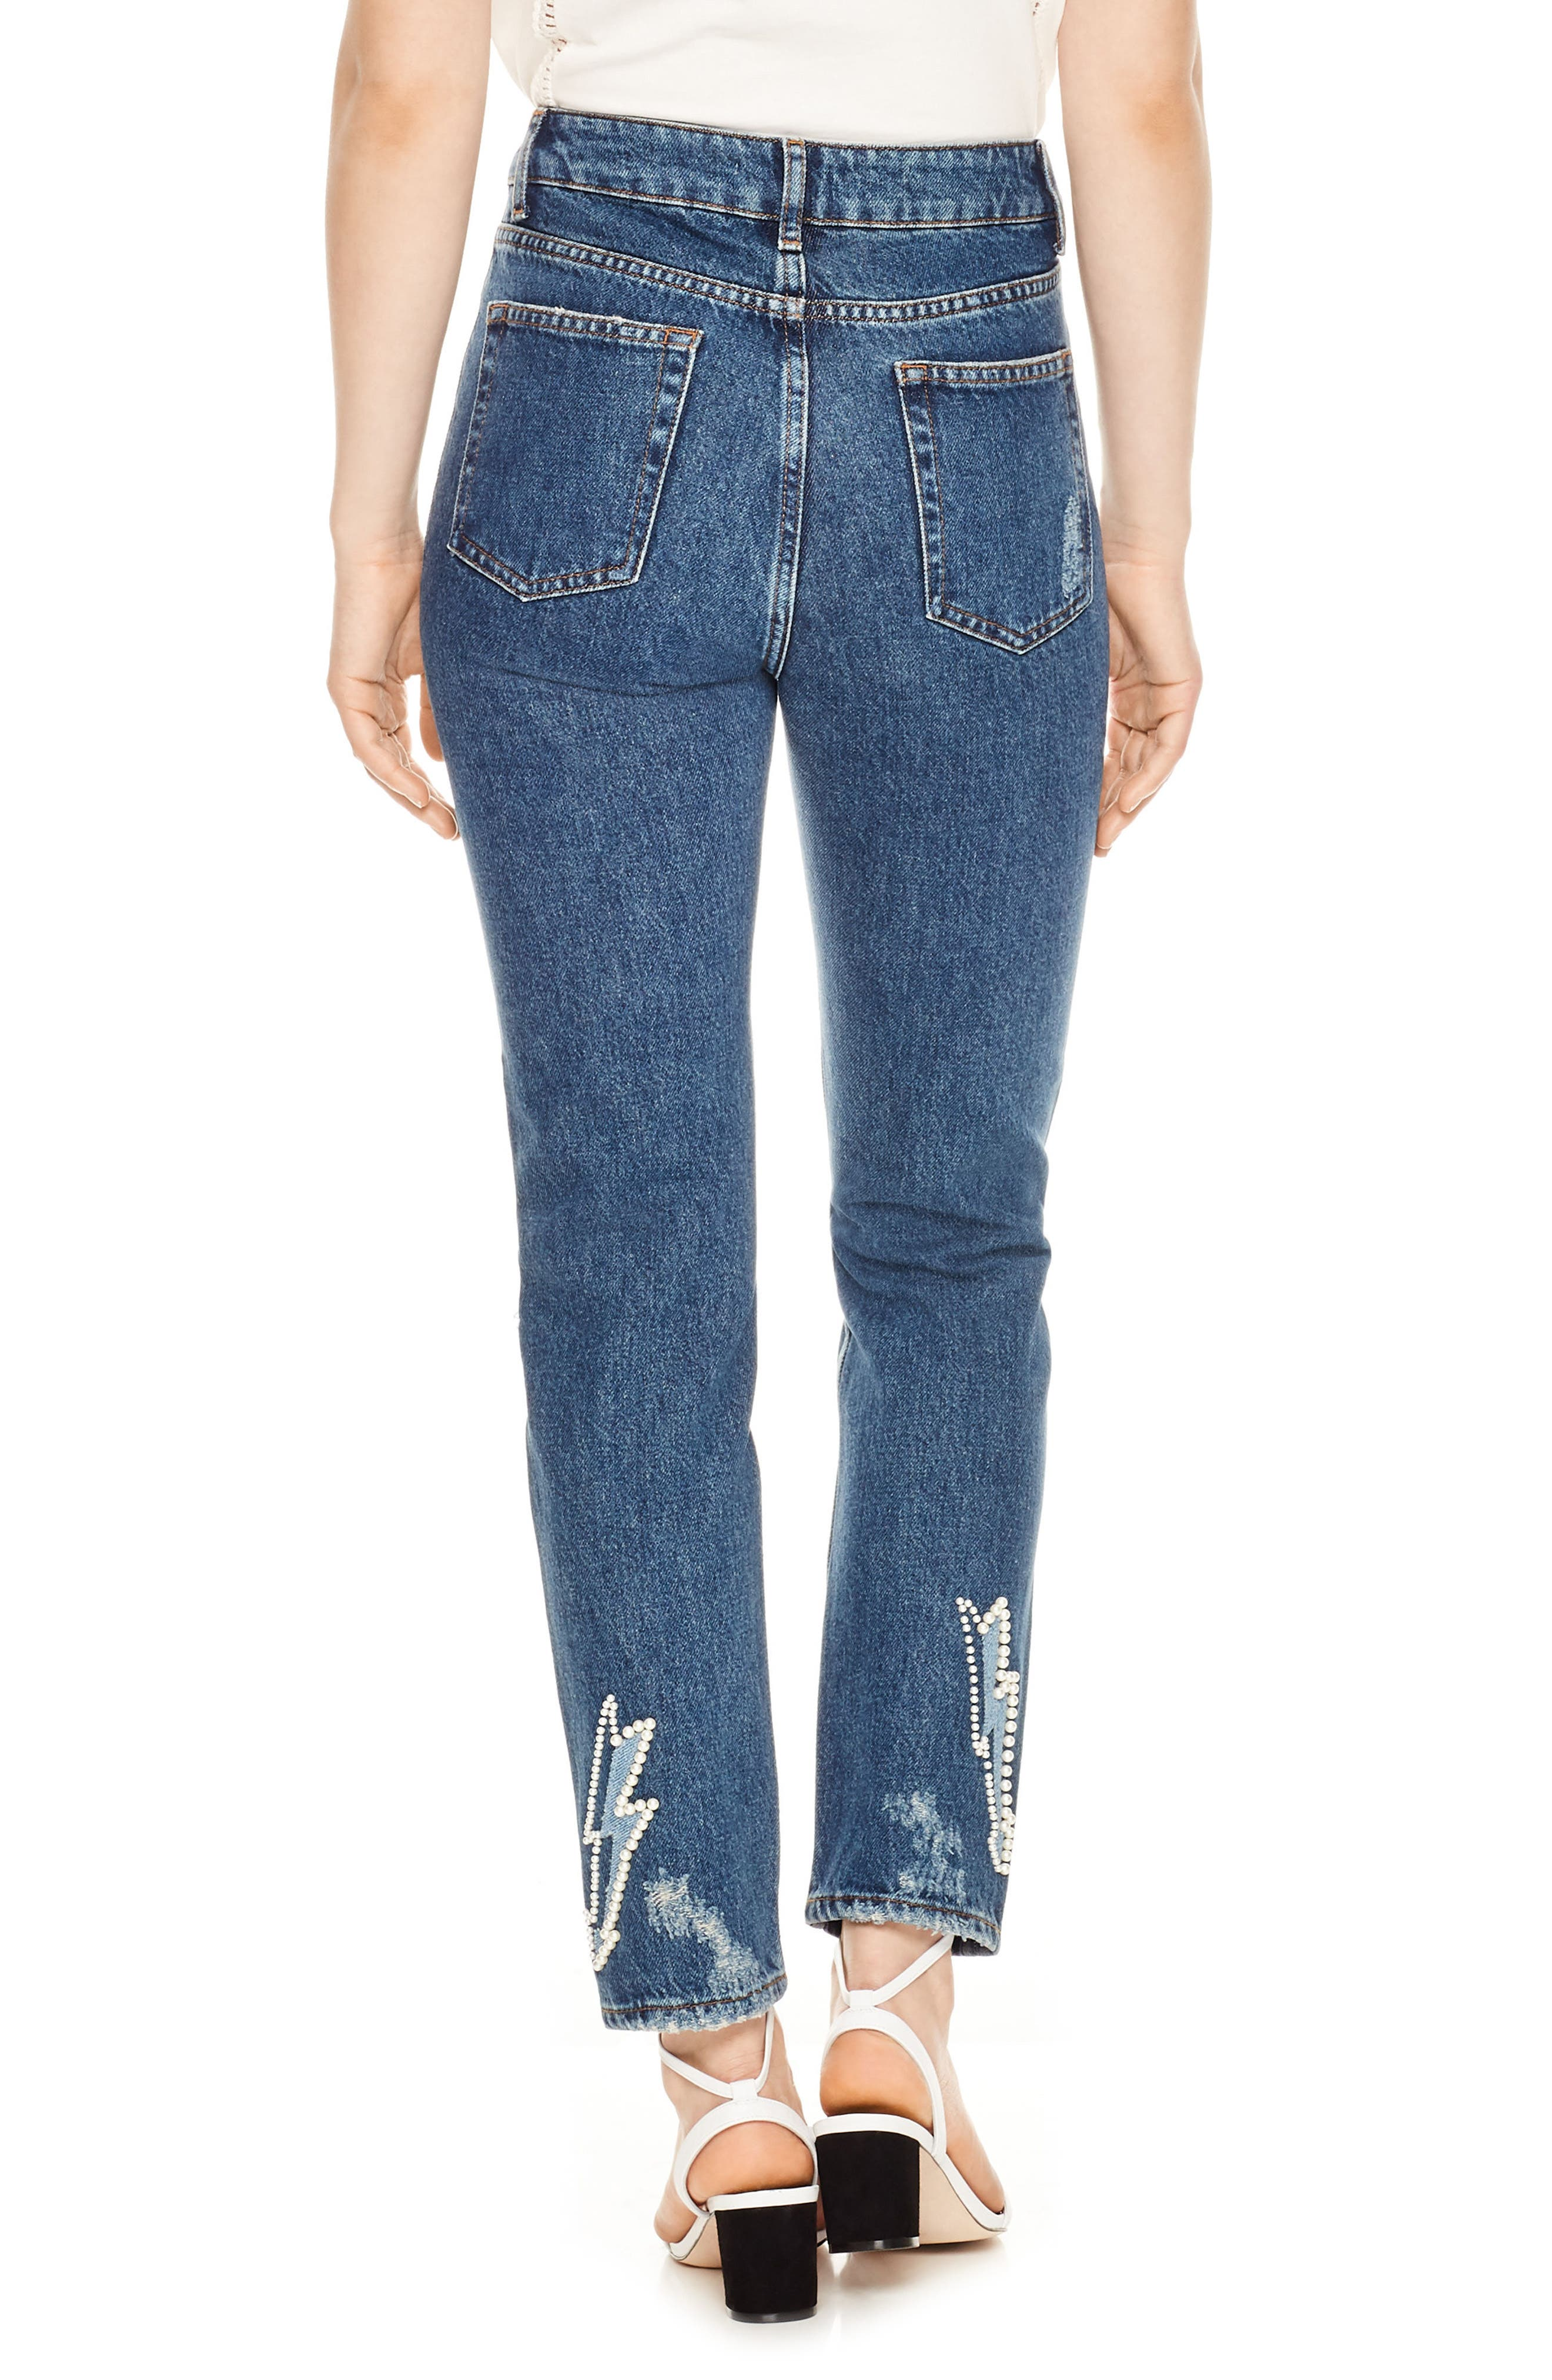 Ripped Lighting Bolt Jeans,                             Alternate thumbnail 2, color,                             Blue Vintage - Denim